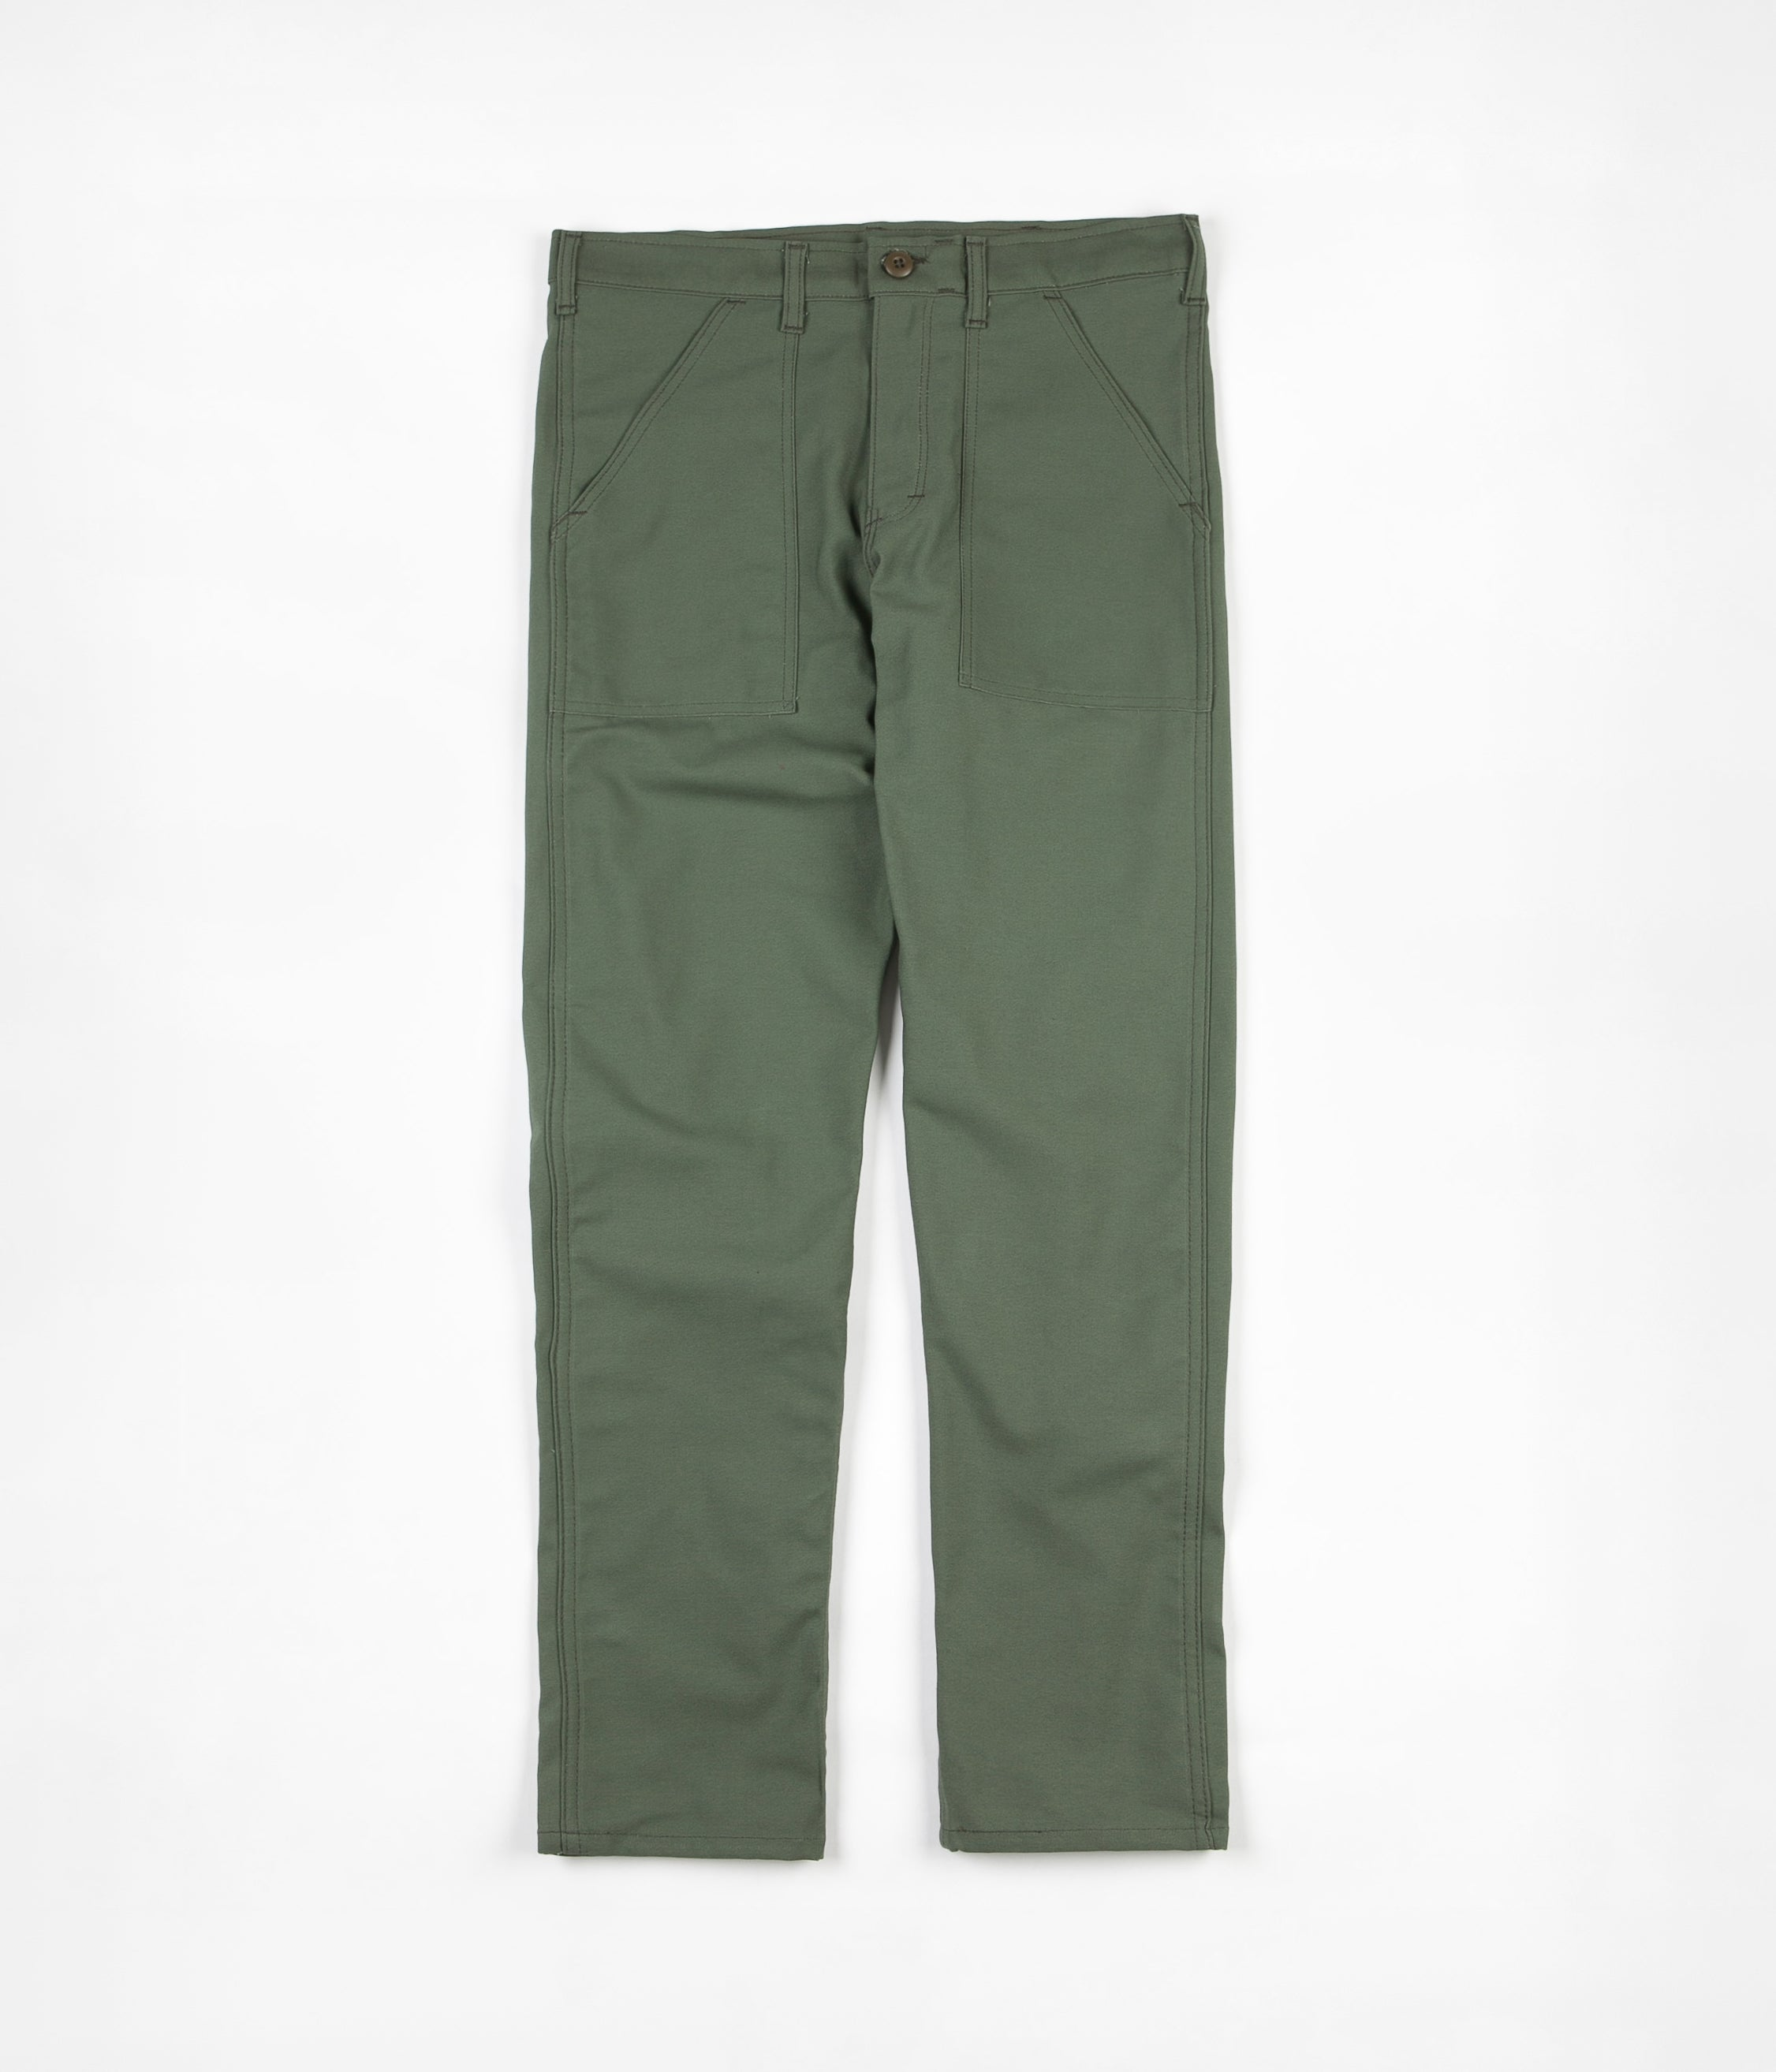 stan-ray-slim-fit-4-pocket-fatigue-trousers-olive-sateen-1 9e97455f-f2c7-4f95-a7e4-8f93f933572c.jpg v 1535627201 387cf5f8573b0